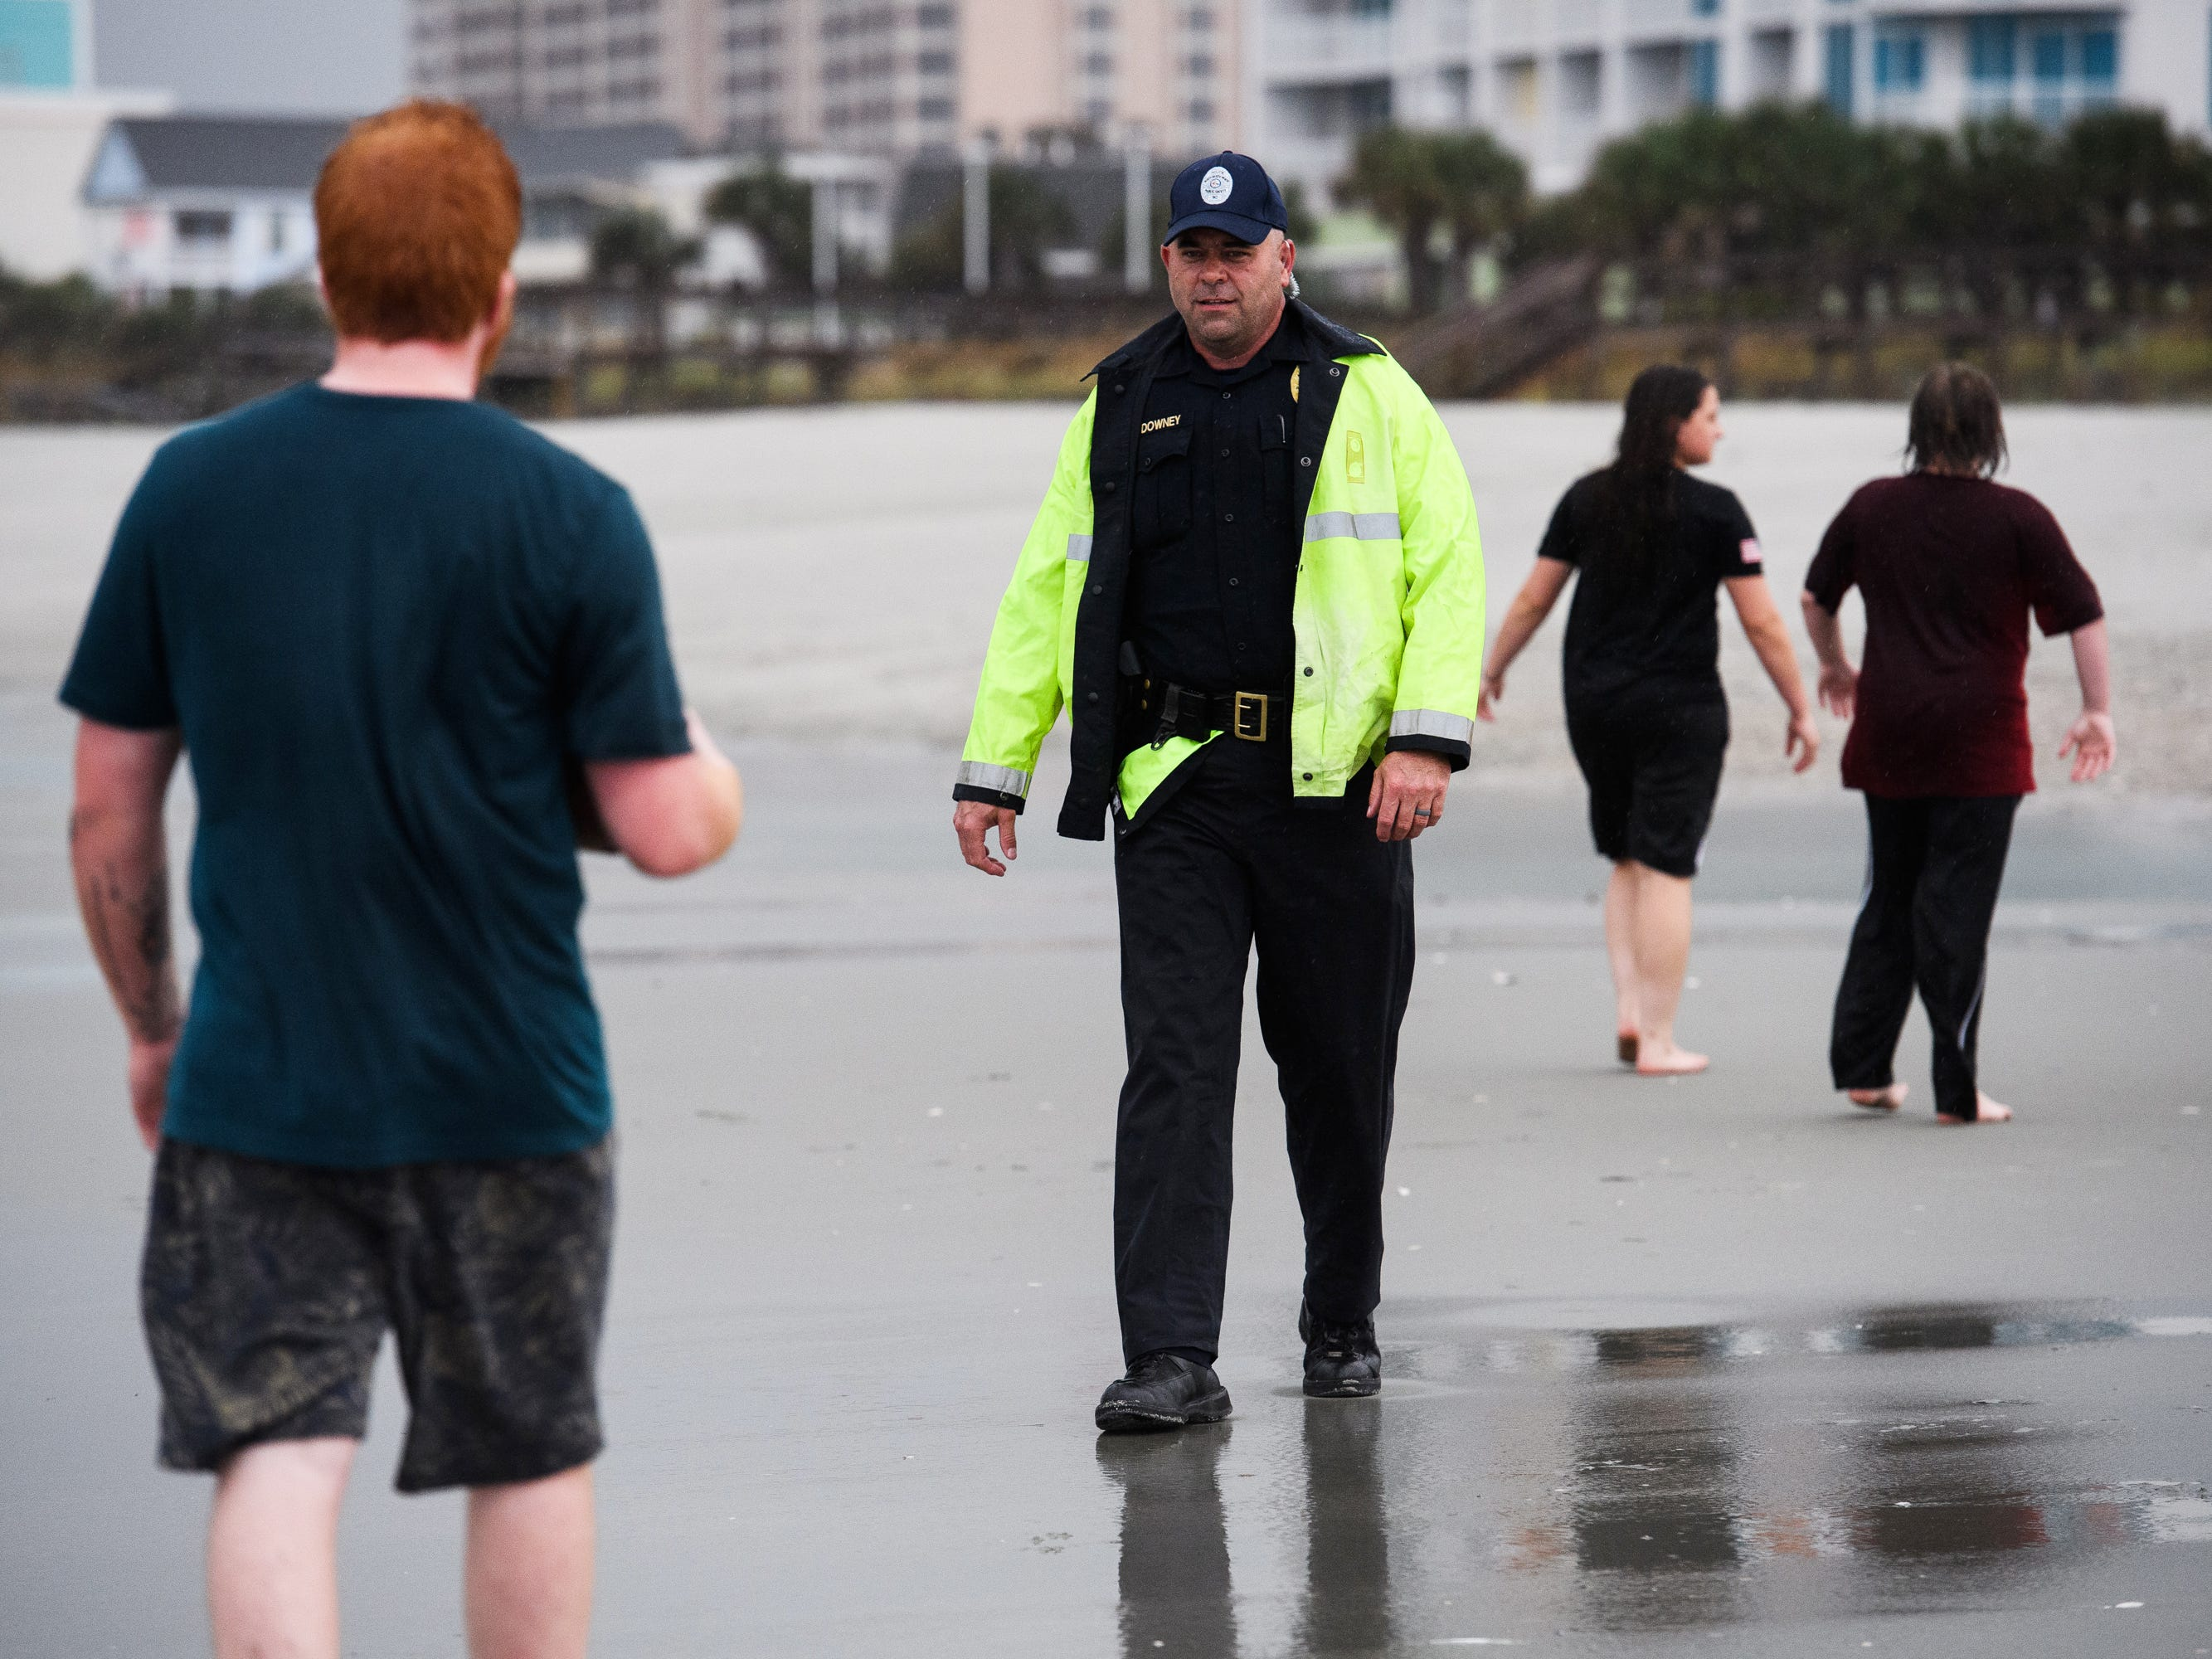 A North Myrtle Beach, S.C. public safety officer informs beachgoers of the 7 p.m. curfew due to Hurricane Florence on, Sept. 13, 2018.